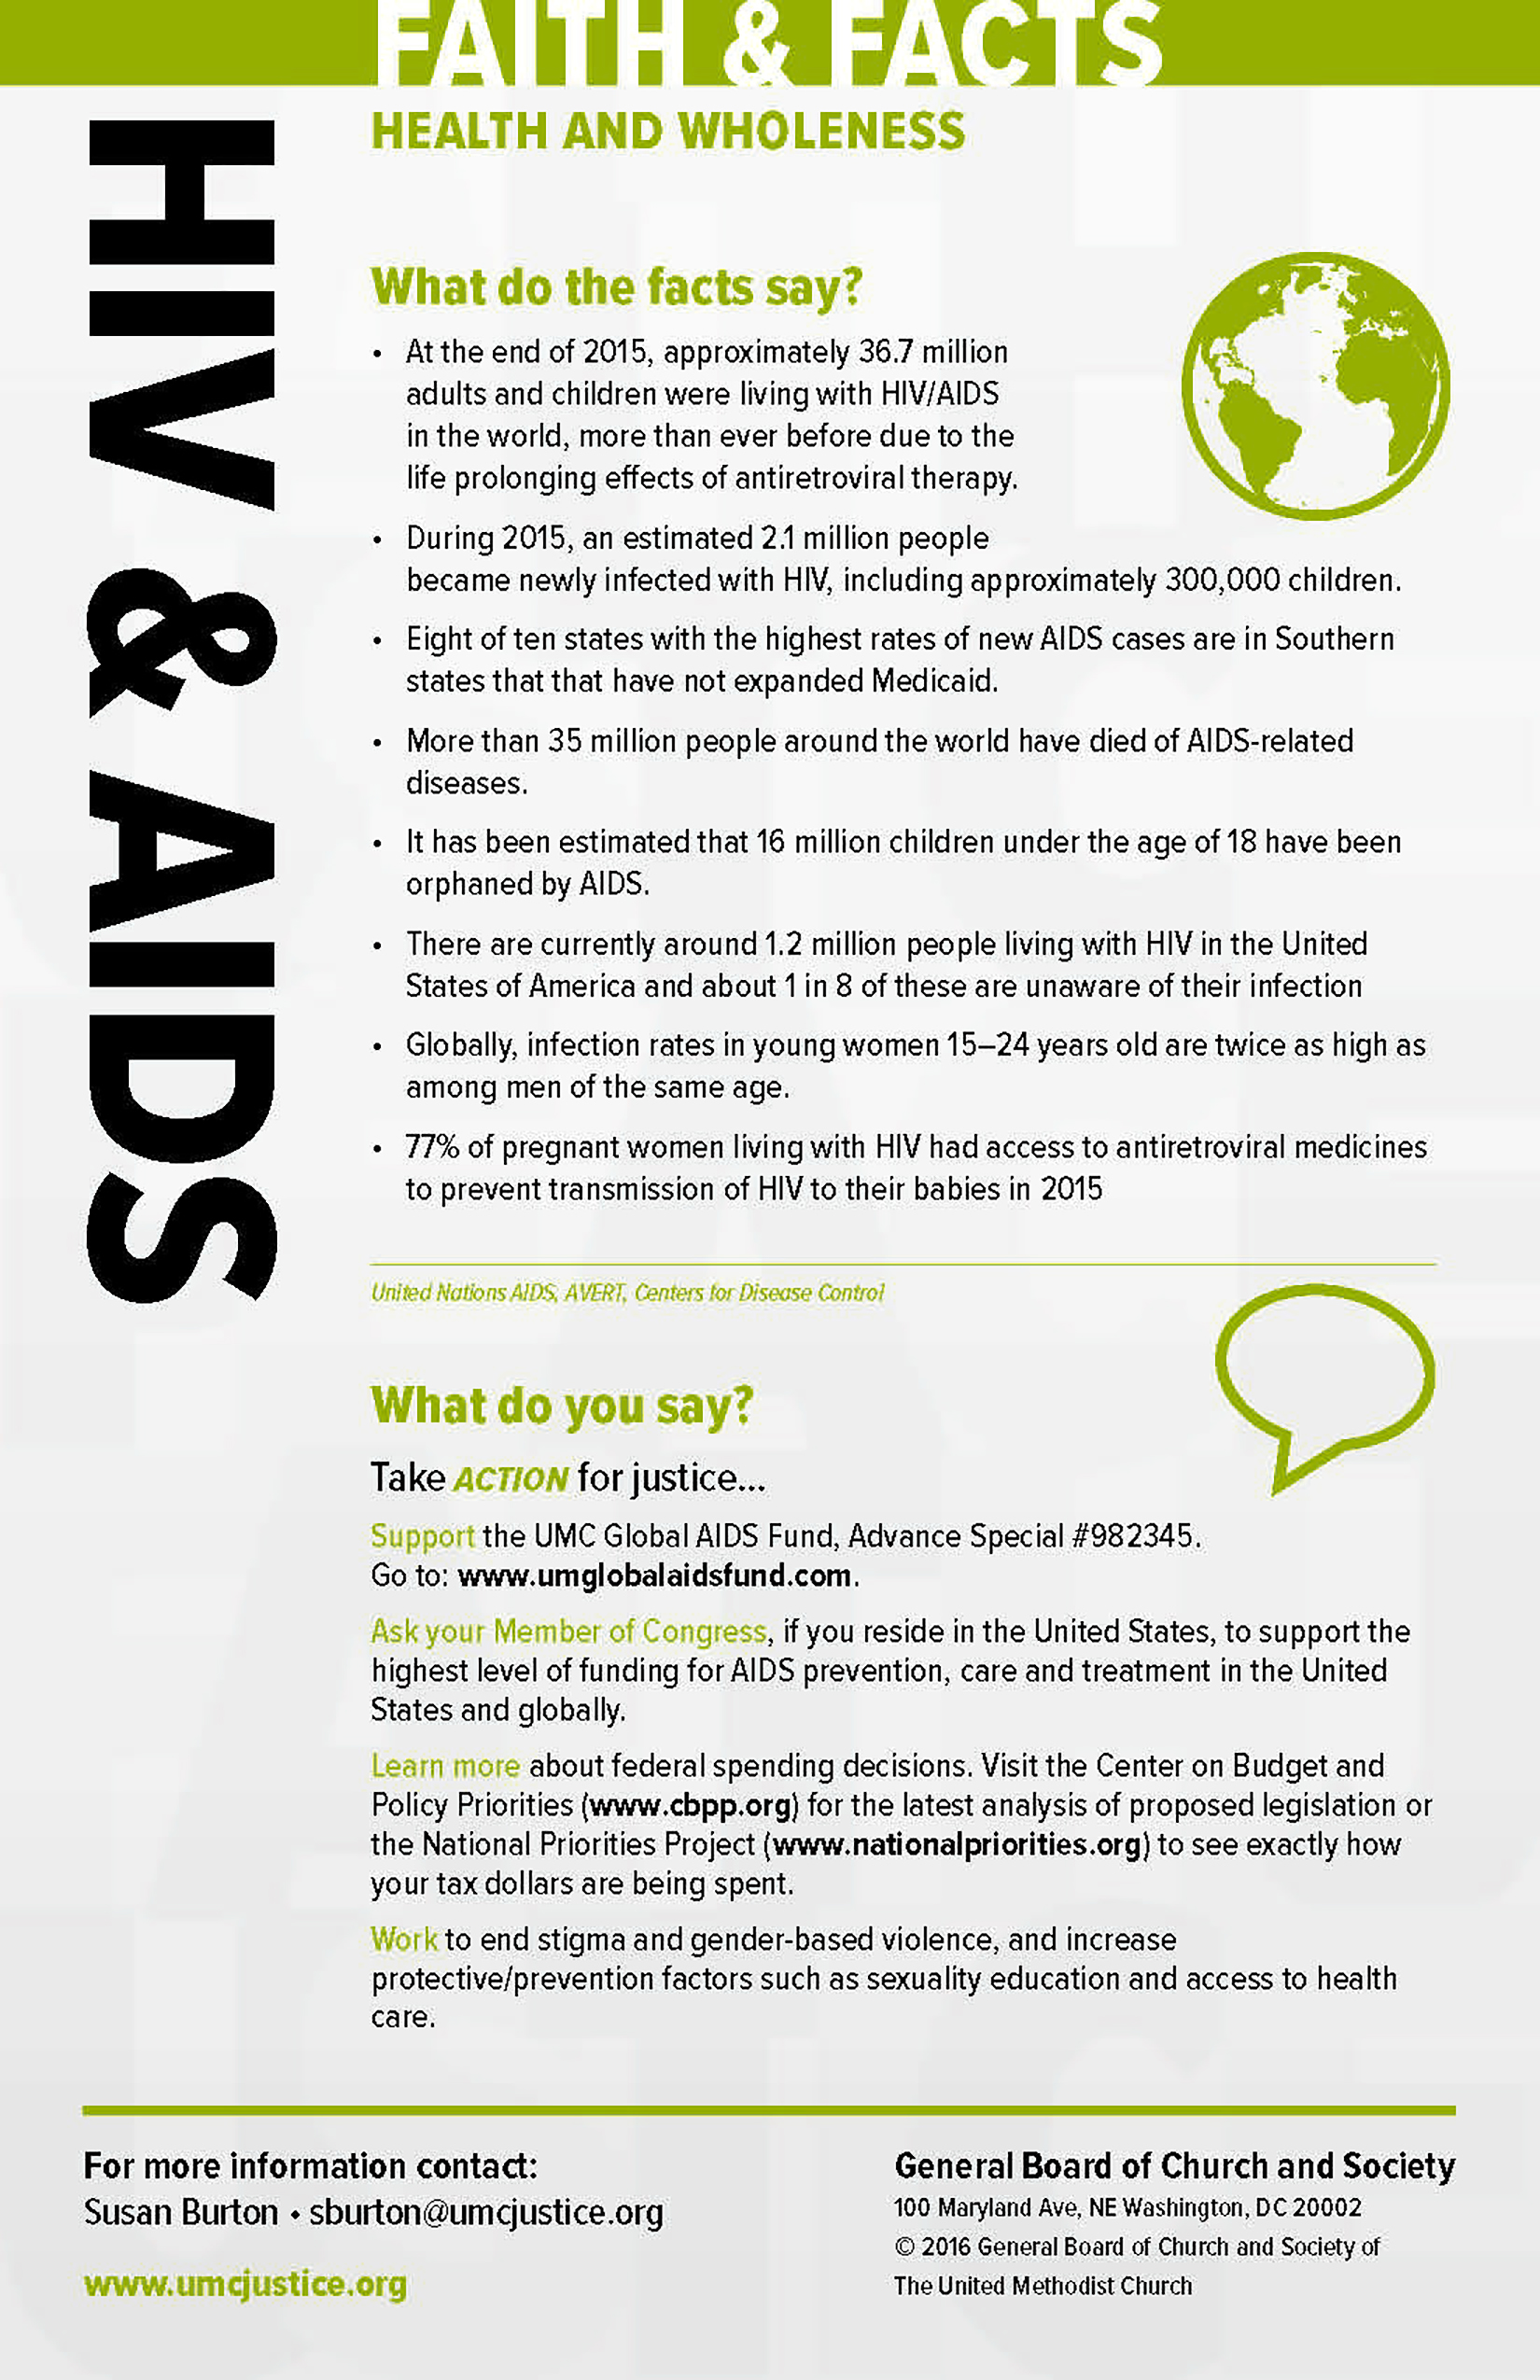 Faith and Facts Card — HIV and AIDS_Side_2